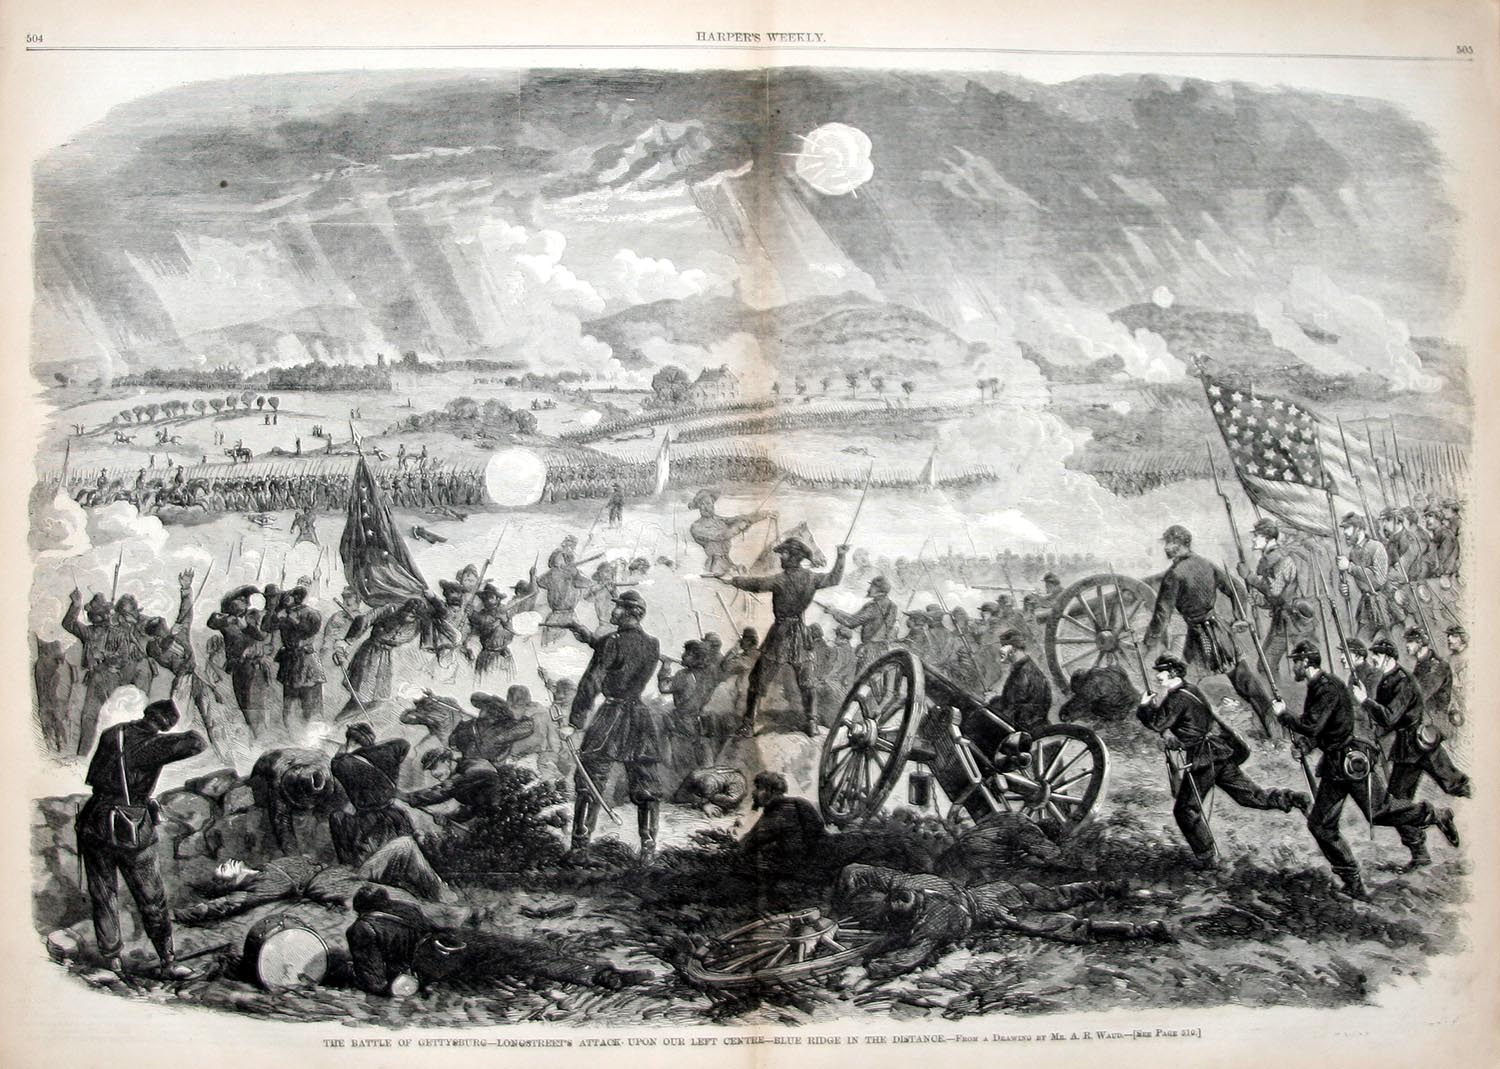 a research report on a major siege of the american civil war Research essay sample on causes of mexican american war custom was a major factor in the cause of the war war, american civil war research essay.